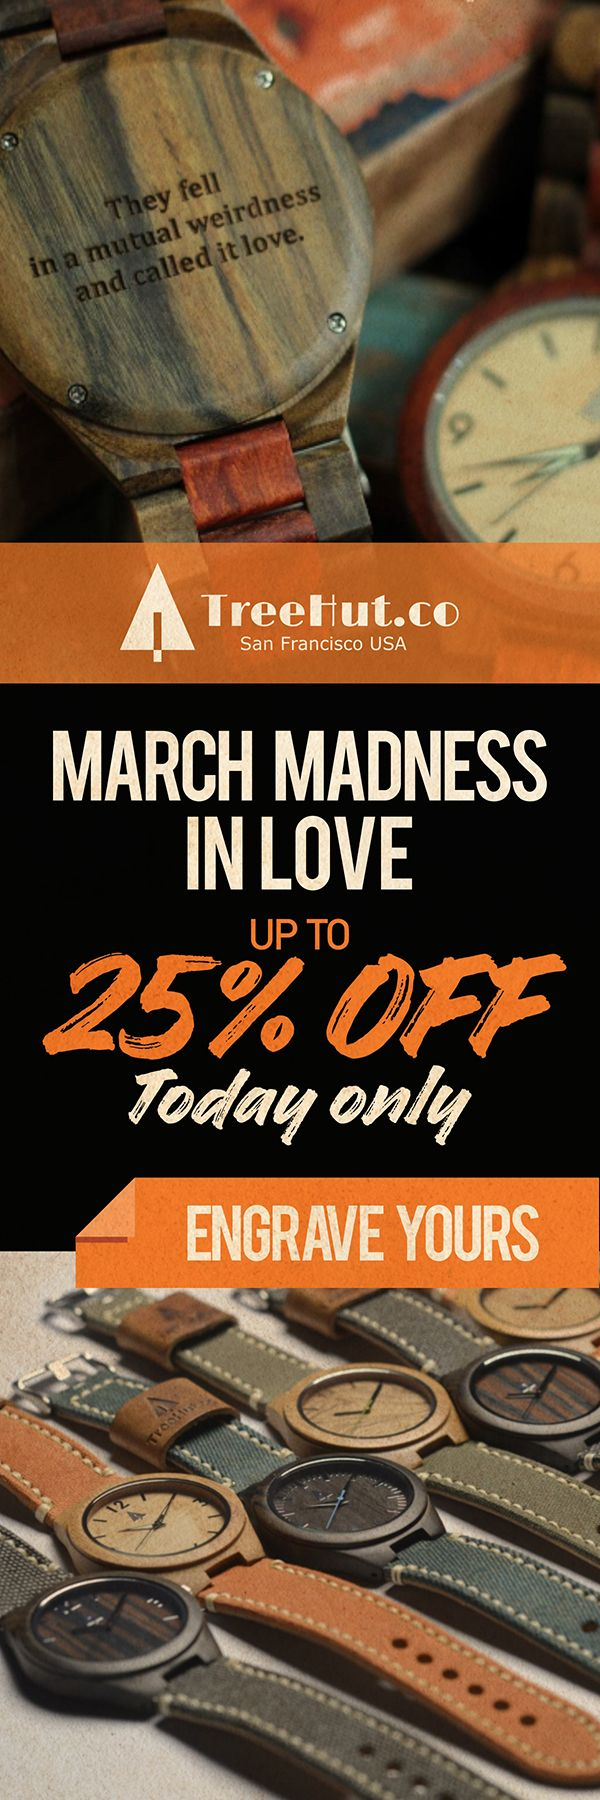 Get up to 25% off for March Madness in Love! Today only! Handcrafted in San Francisco. Nature-inspired designs that make the perfect gift for your special ones! See the full collection at Tree Hut.